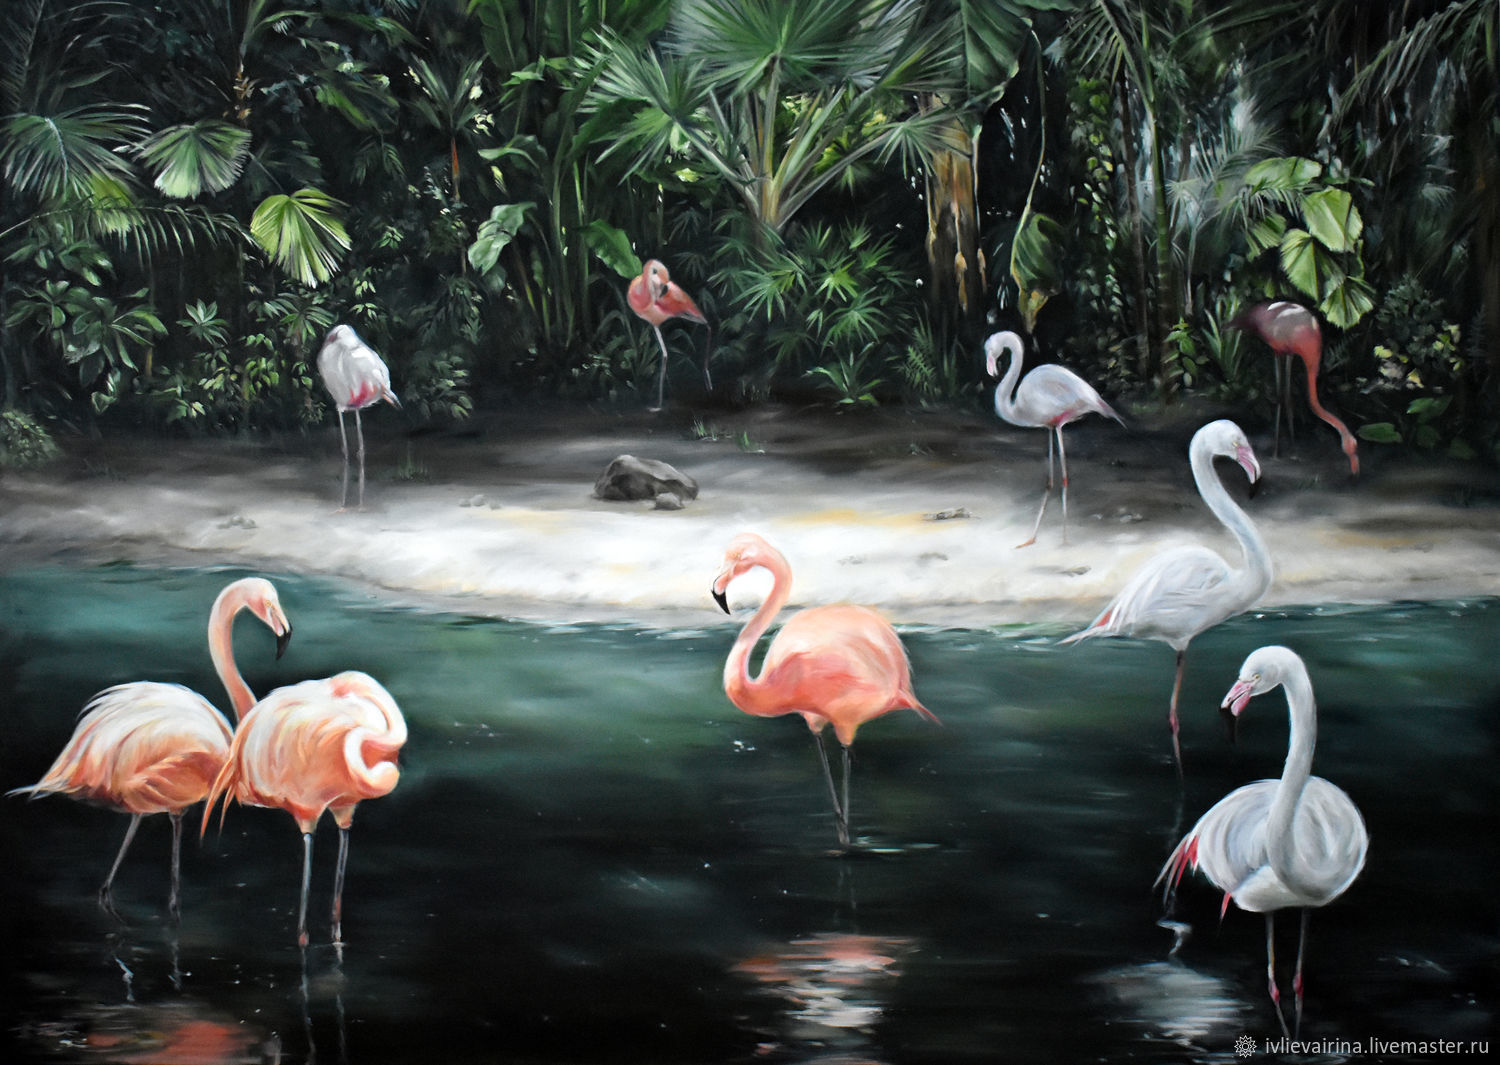 Oil painting 'Landscape with flamingos' 140*100 cm, Pictures, Moscow,  Фото №1